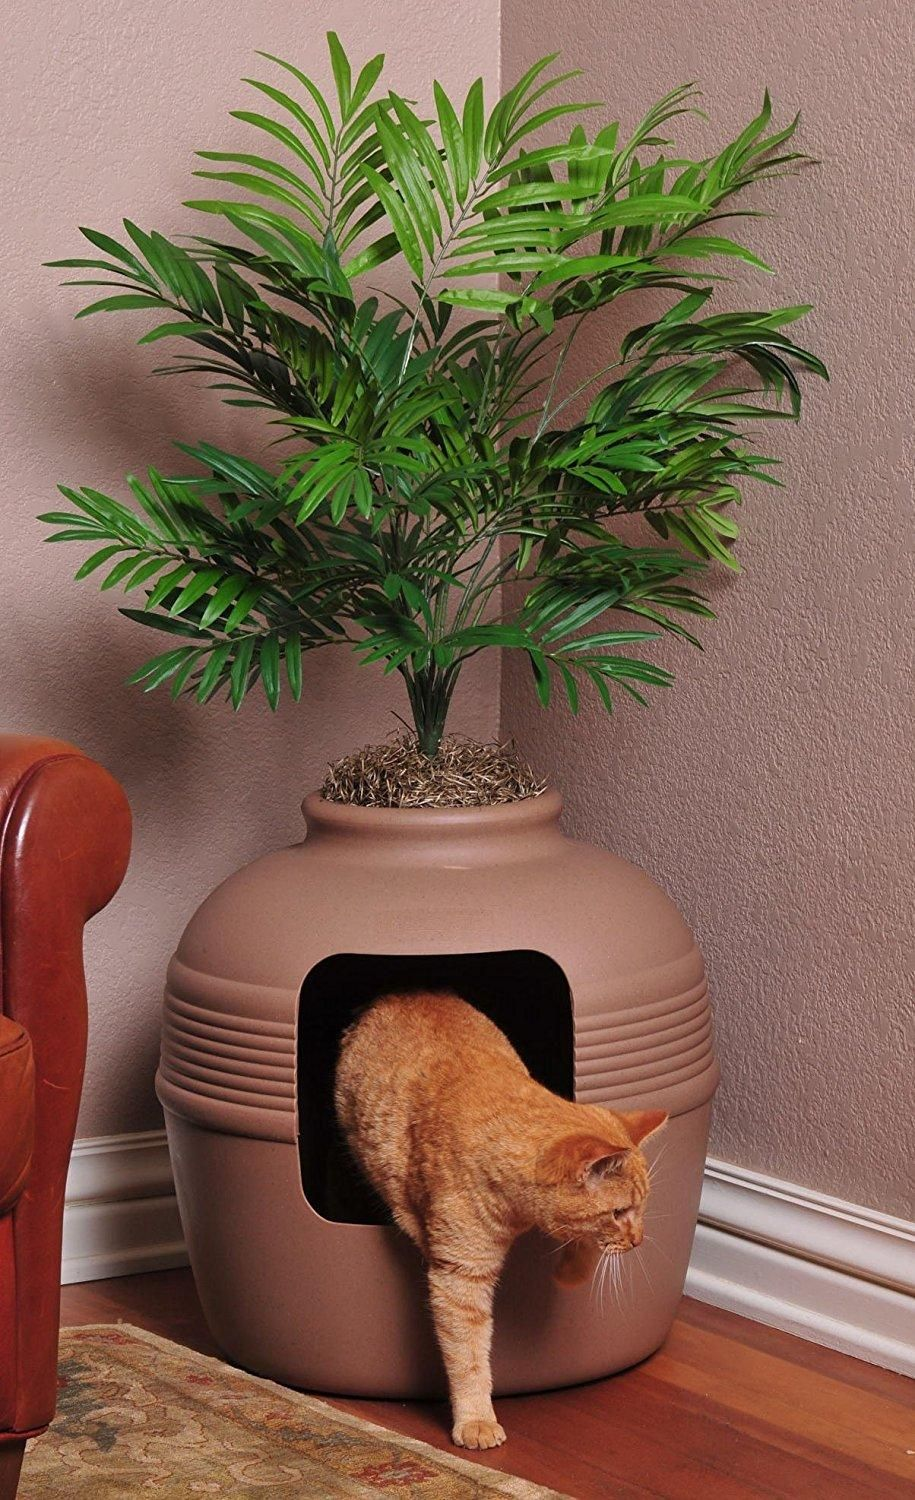 Where To Keep A Litter Box In Small Apartment